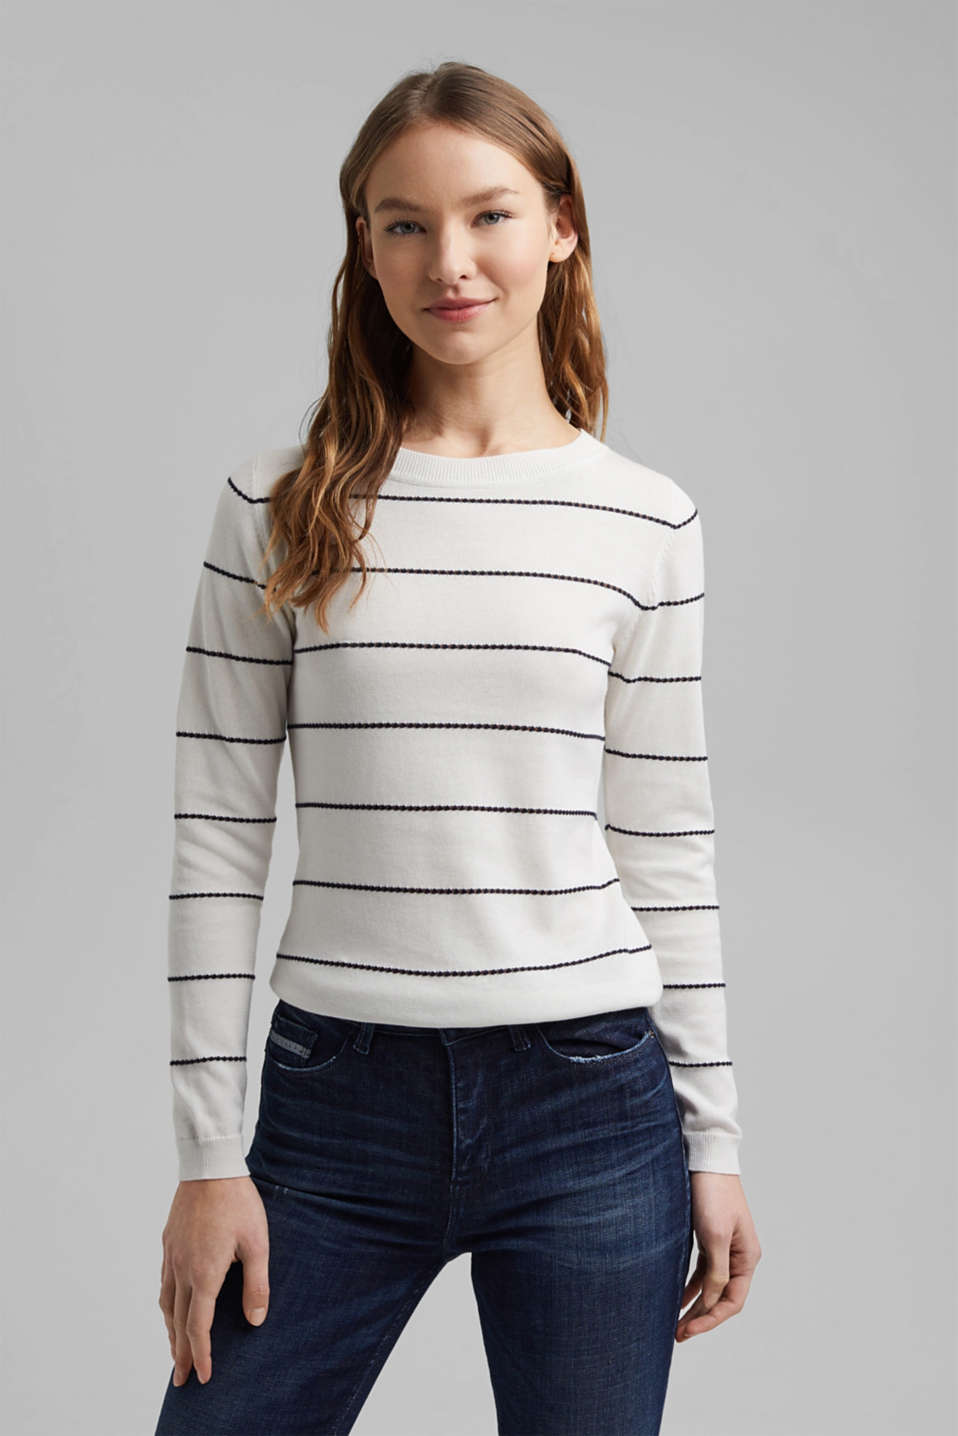 Esprit - Striped jumper made of 100% organic cotton